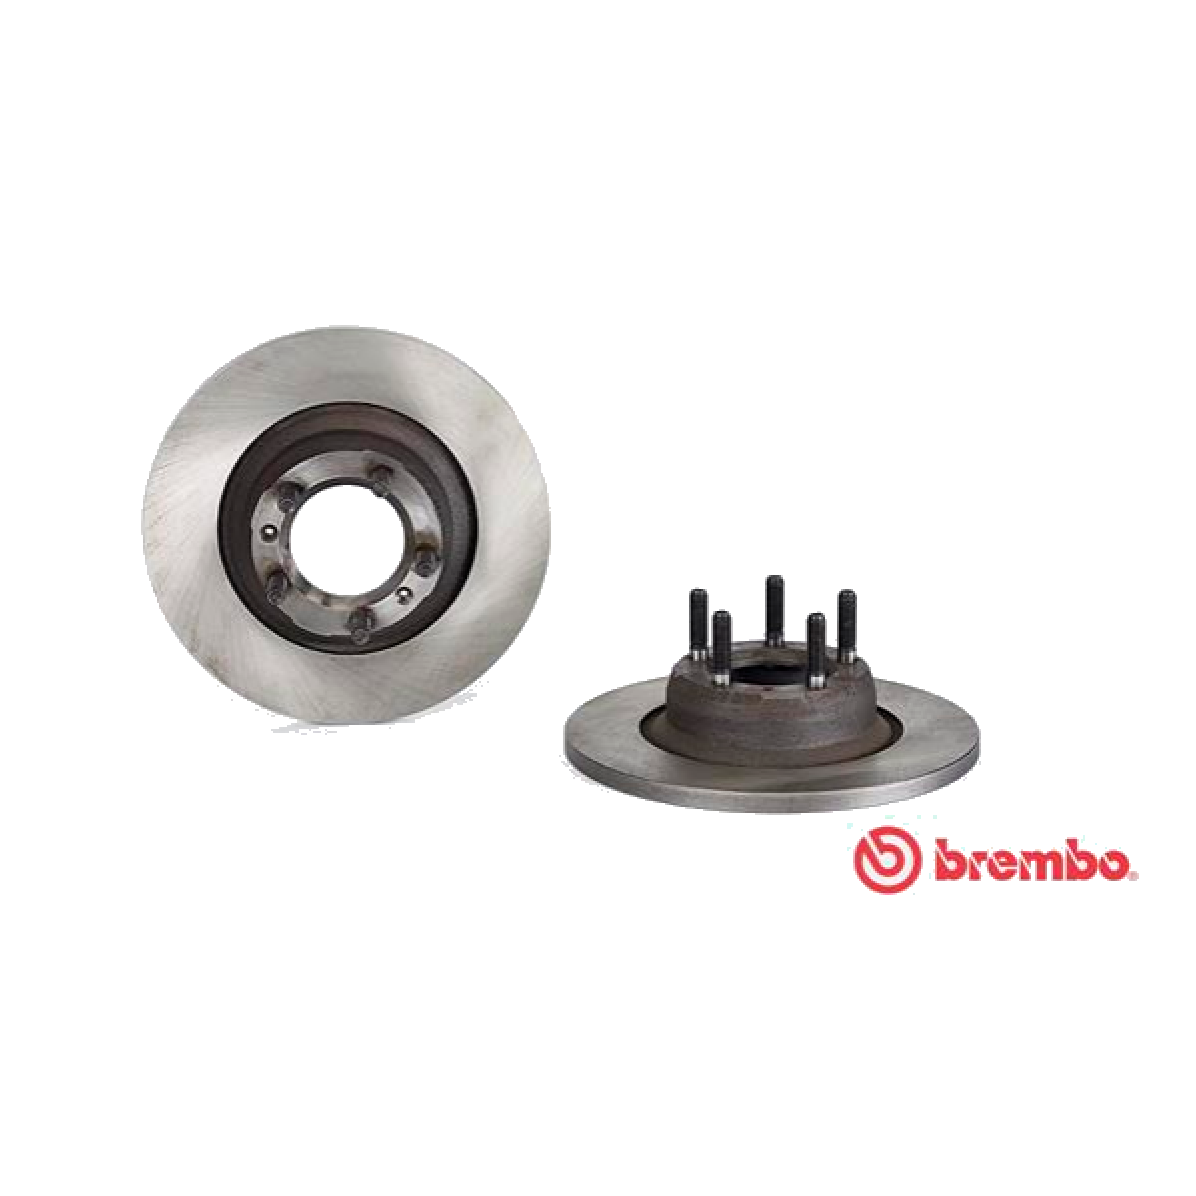 PAIR FRONT BRAKE DISCS ALFA ROMEO 75 - 90 2.4TD BREMBO FOR 60533595